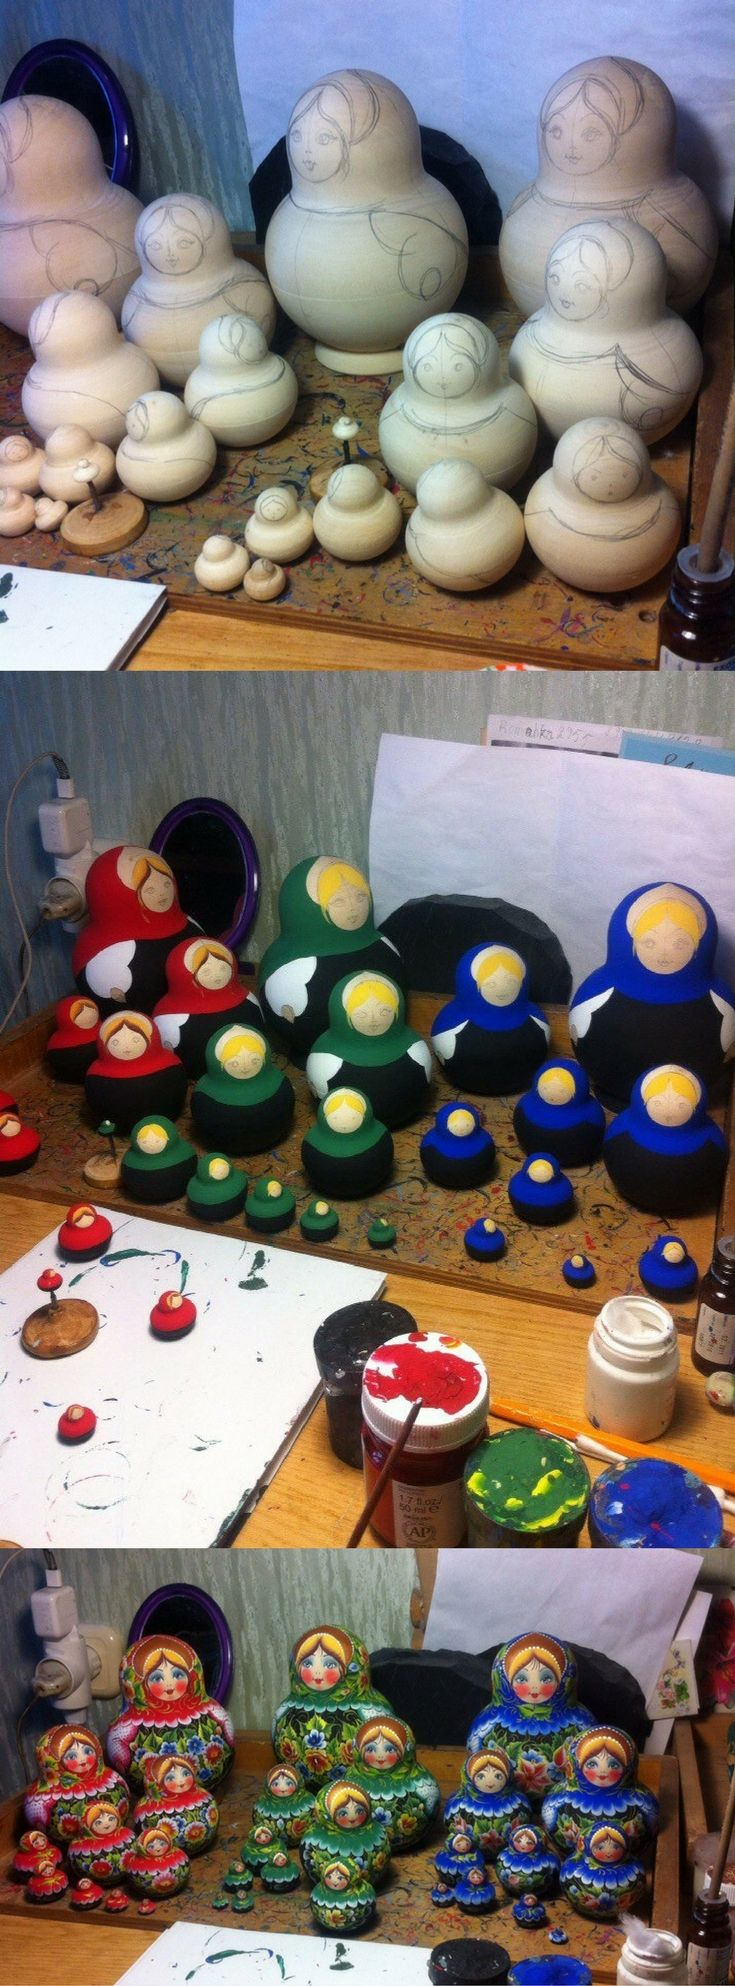 10 piece matryoshka dolls by Nelly Marchenko, process of creation